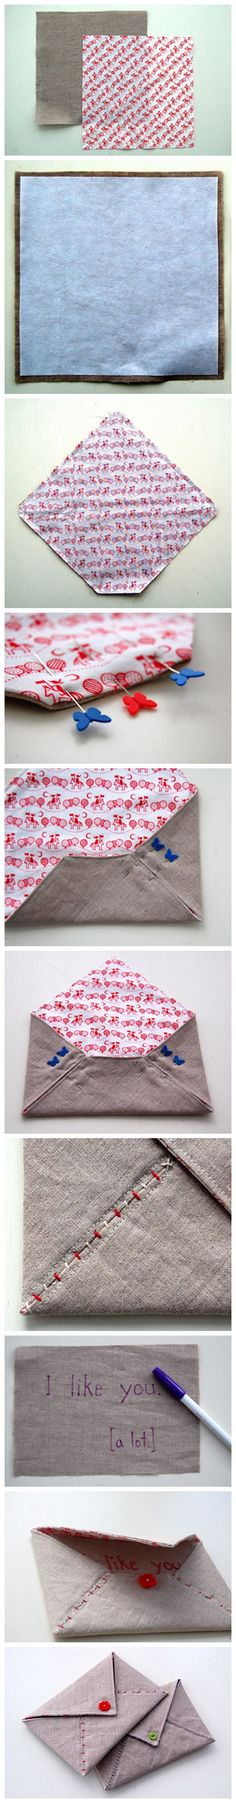 The people who like it to be a envelope package 패브릭 봉투 만들기! Sewing Hacks, Sewing Tutorials, Sewing Patterns, Fabric Crafts, Sewing Crafts, Sewing Projects, Sewing Diy, Patchwork Quilting, Quilts